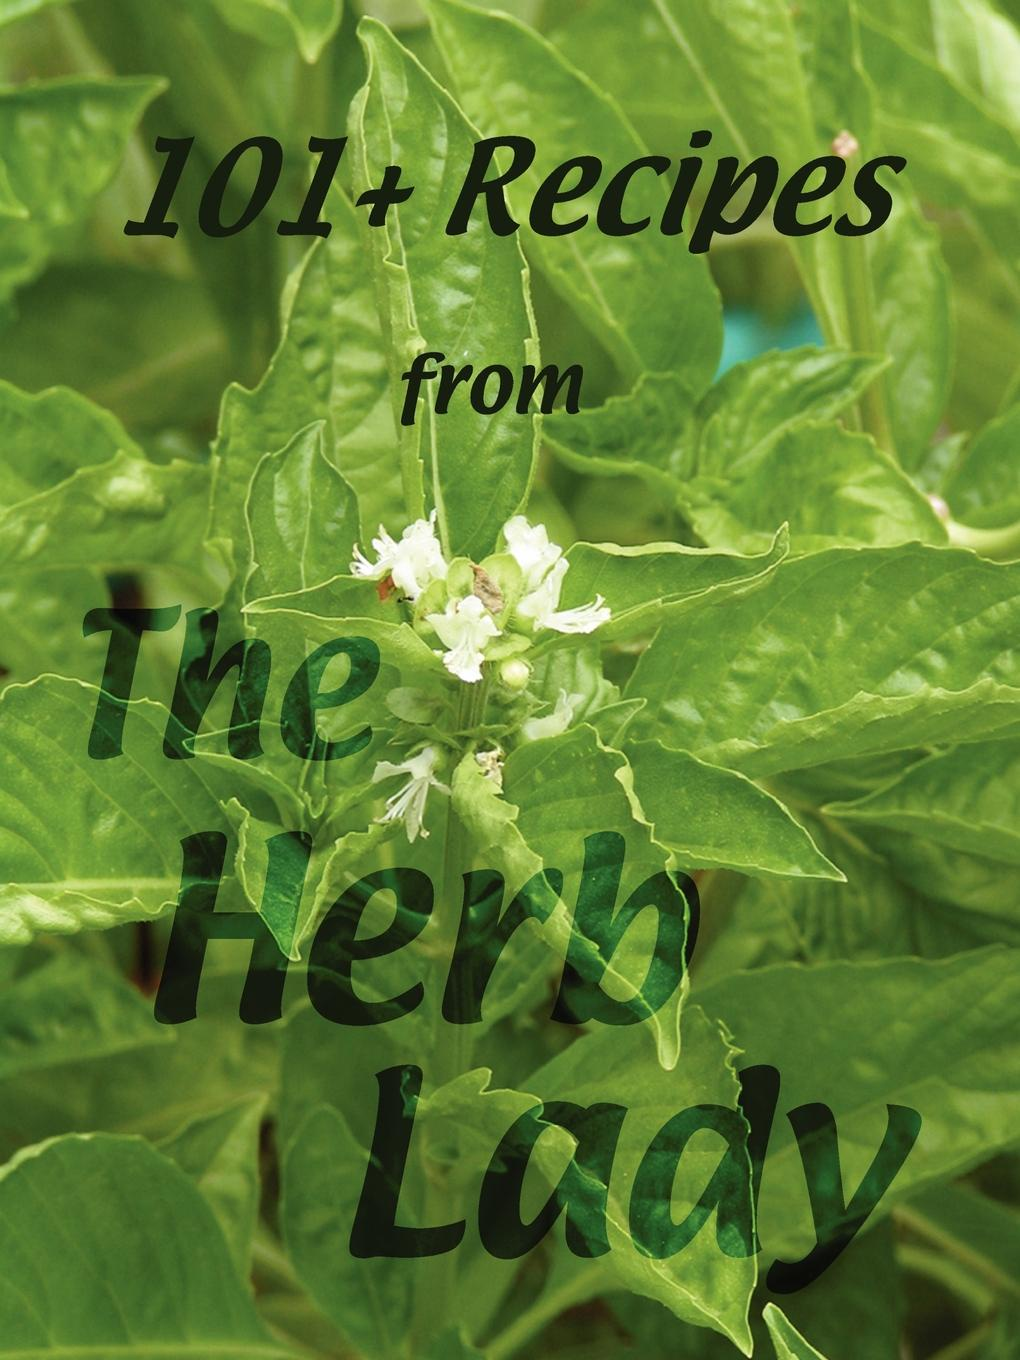 Catherine Crowley 101. Recipes from the Herb Lady suzanne dejohn herb gardening for dummies